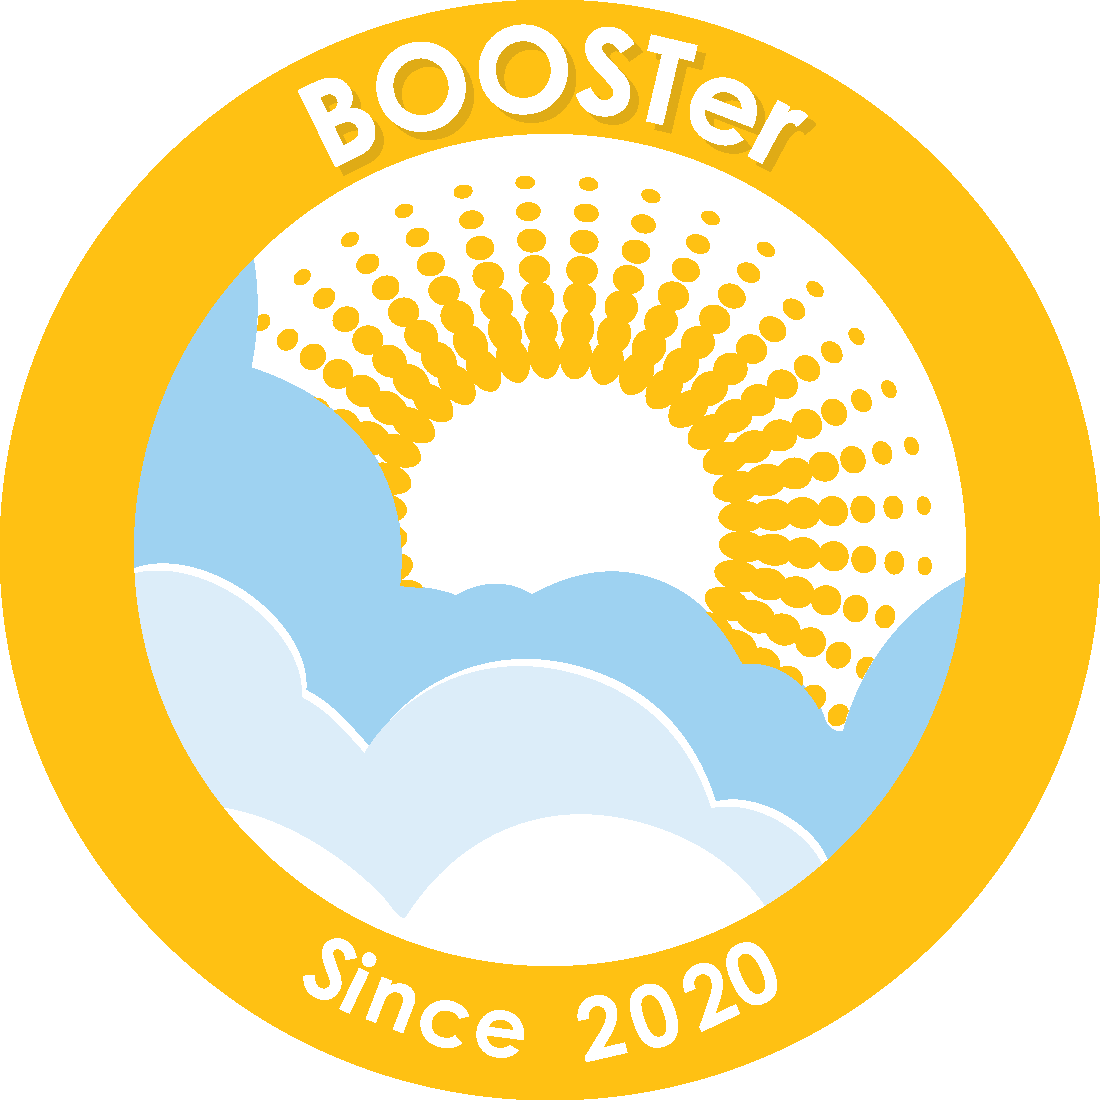 2020 BOOSTer Since badge